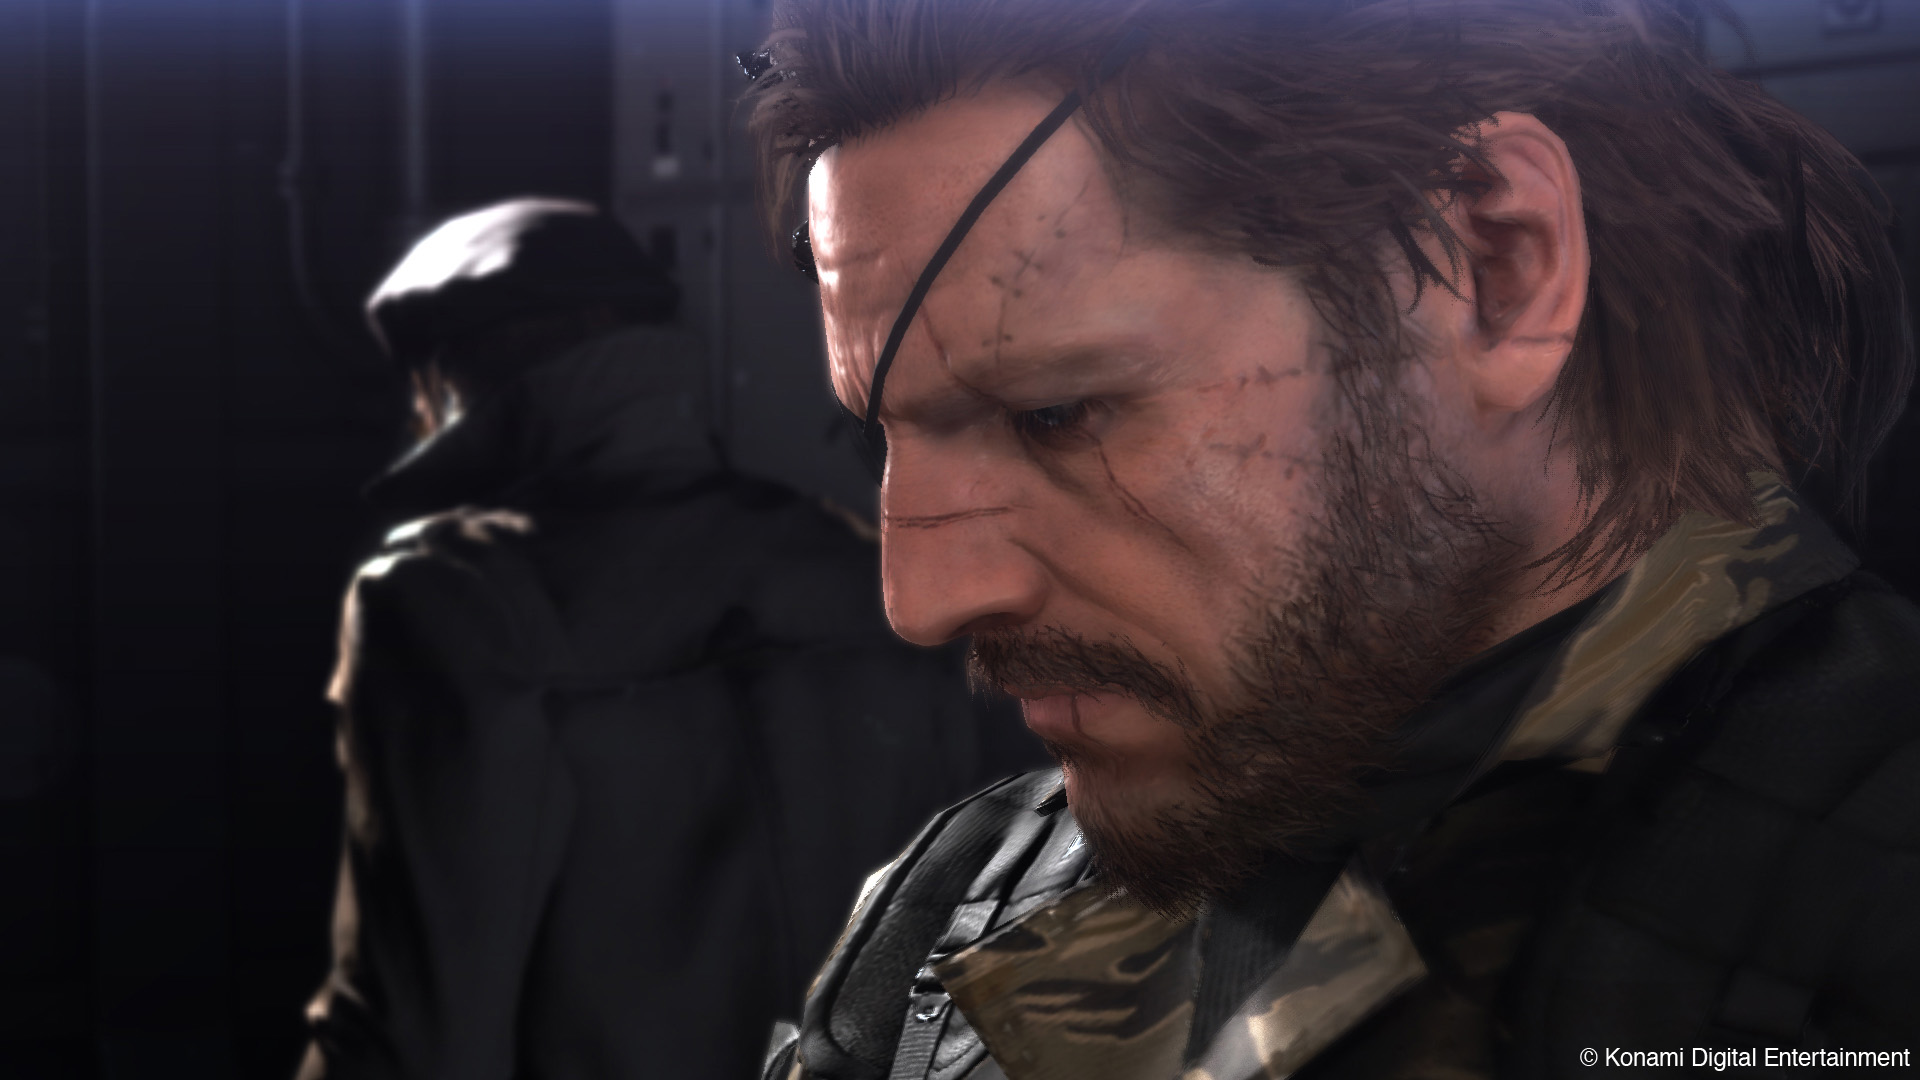 Metal gear solid 5 phantom pain release date in Wellington